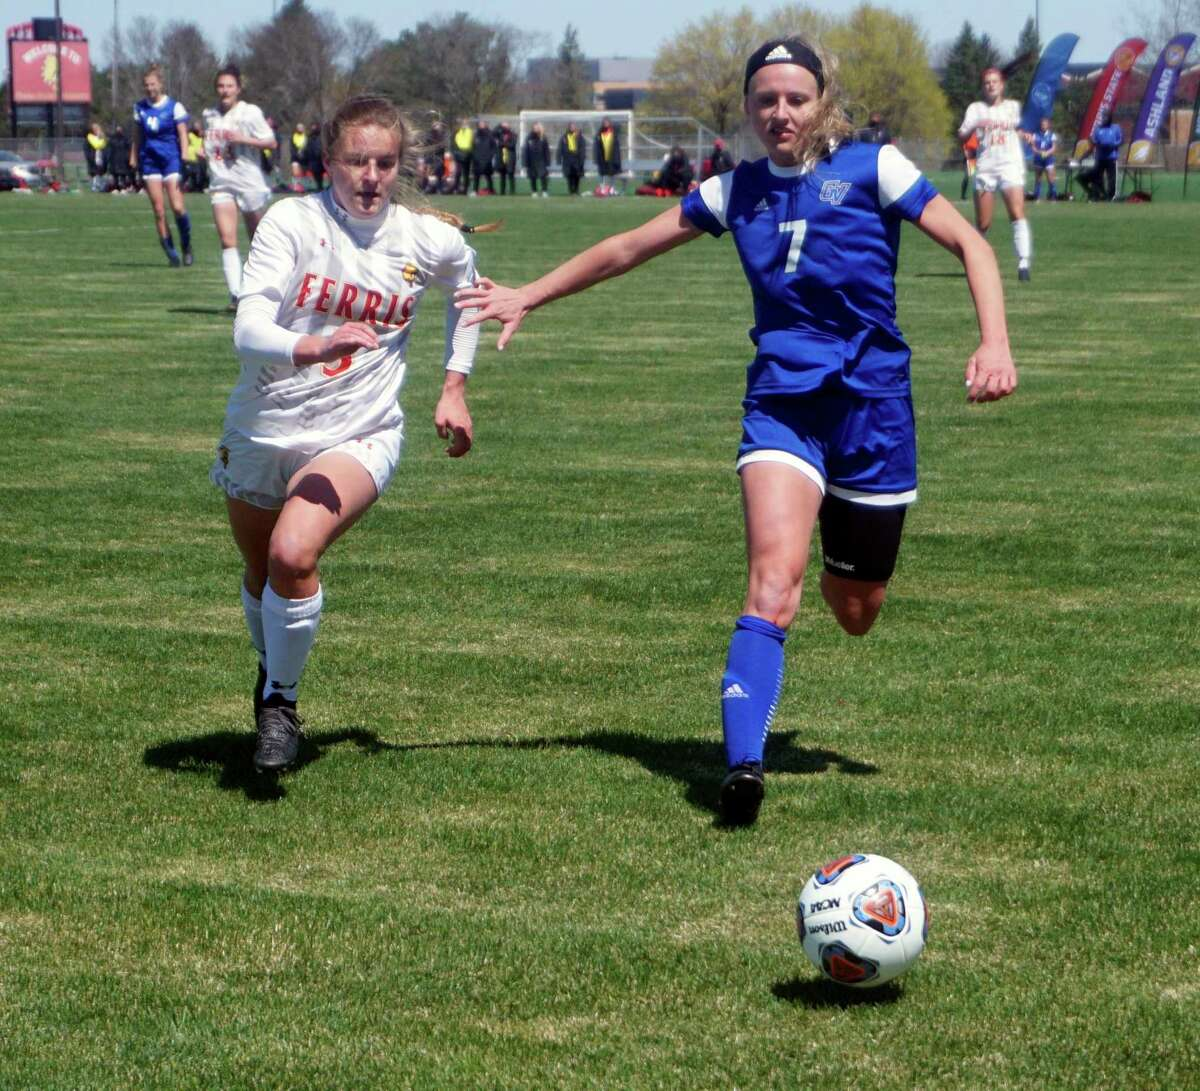 Ferris State junior Emily Mergener (left) and Grand Valley State senior Sydney O'Donnell chase down the ball during Friday afternoon's GLIAC semifinal soccer game. (Pioneer photo/Joe Judd)